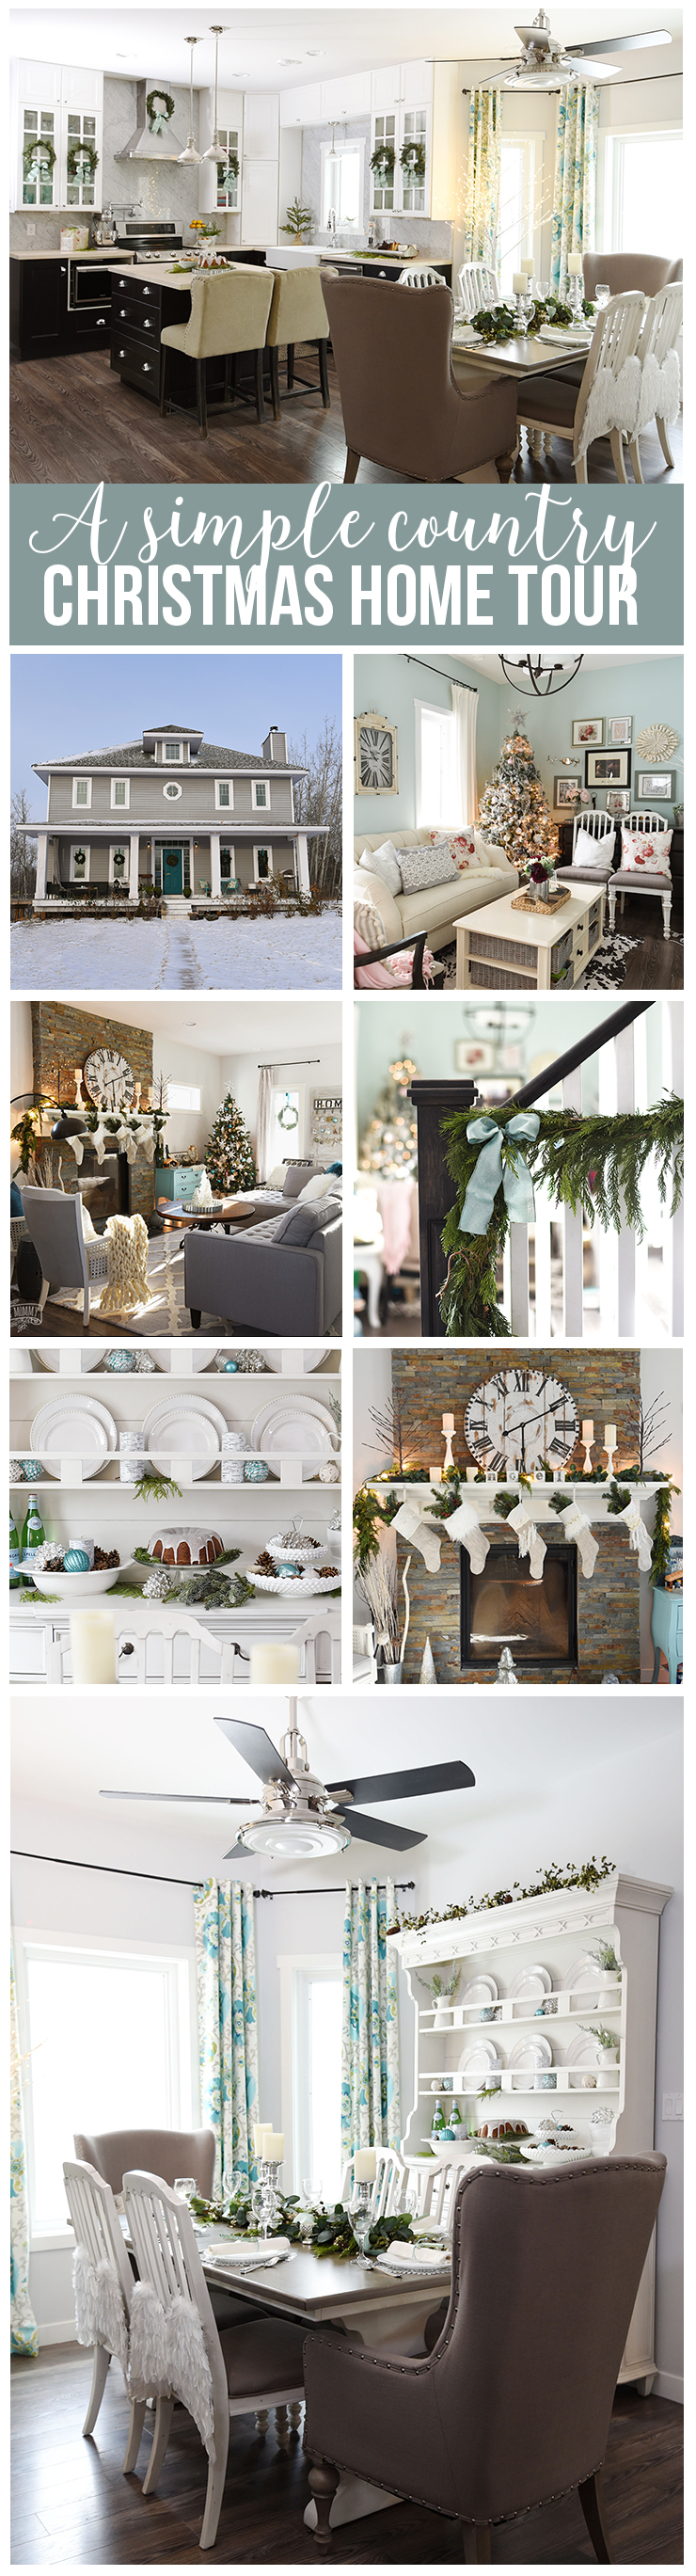 Simply country Christmas home tour